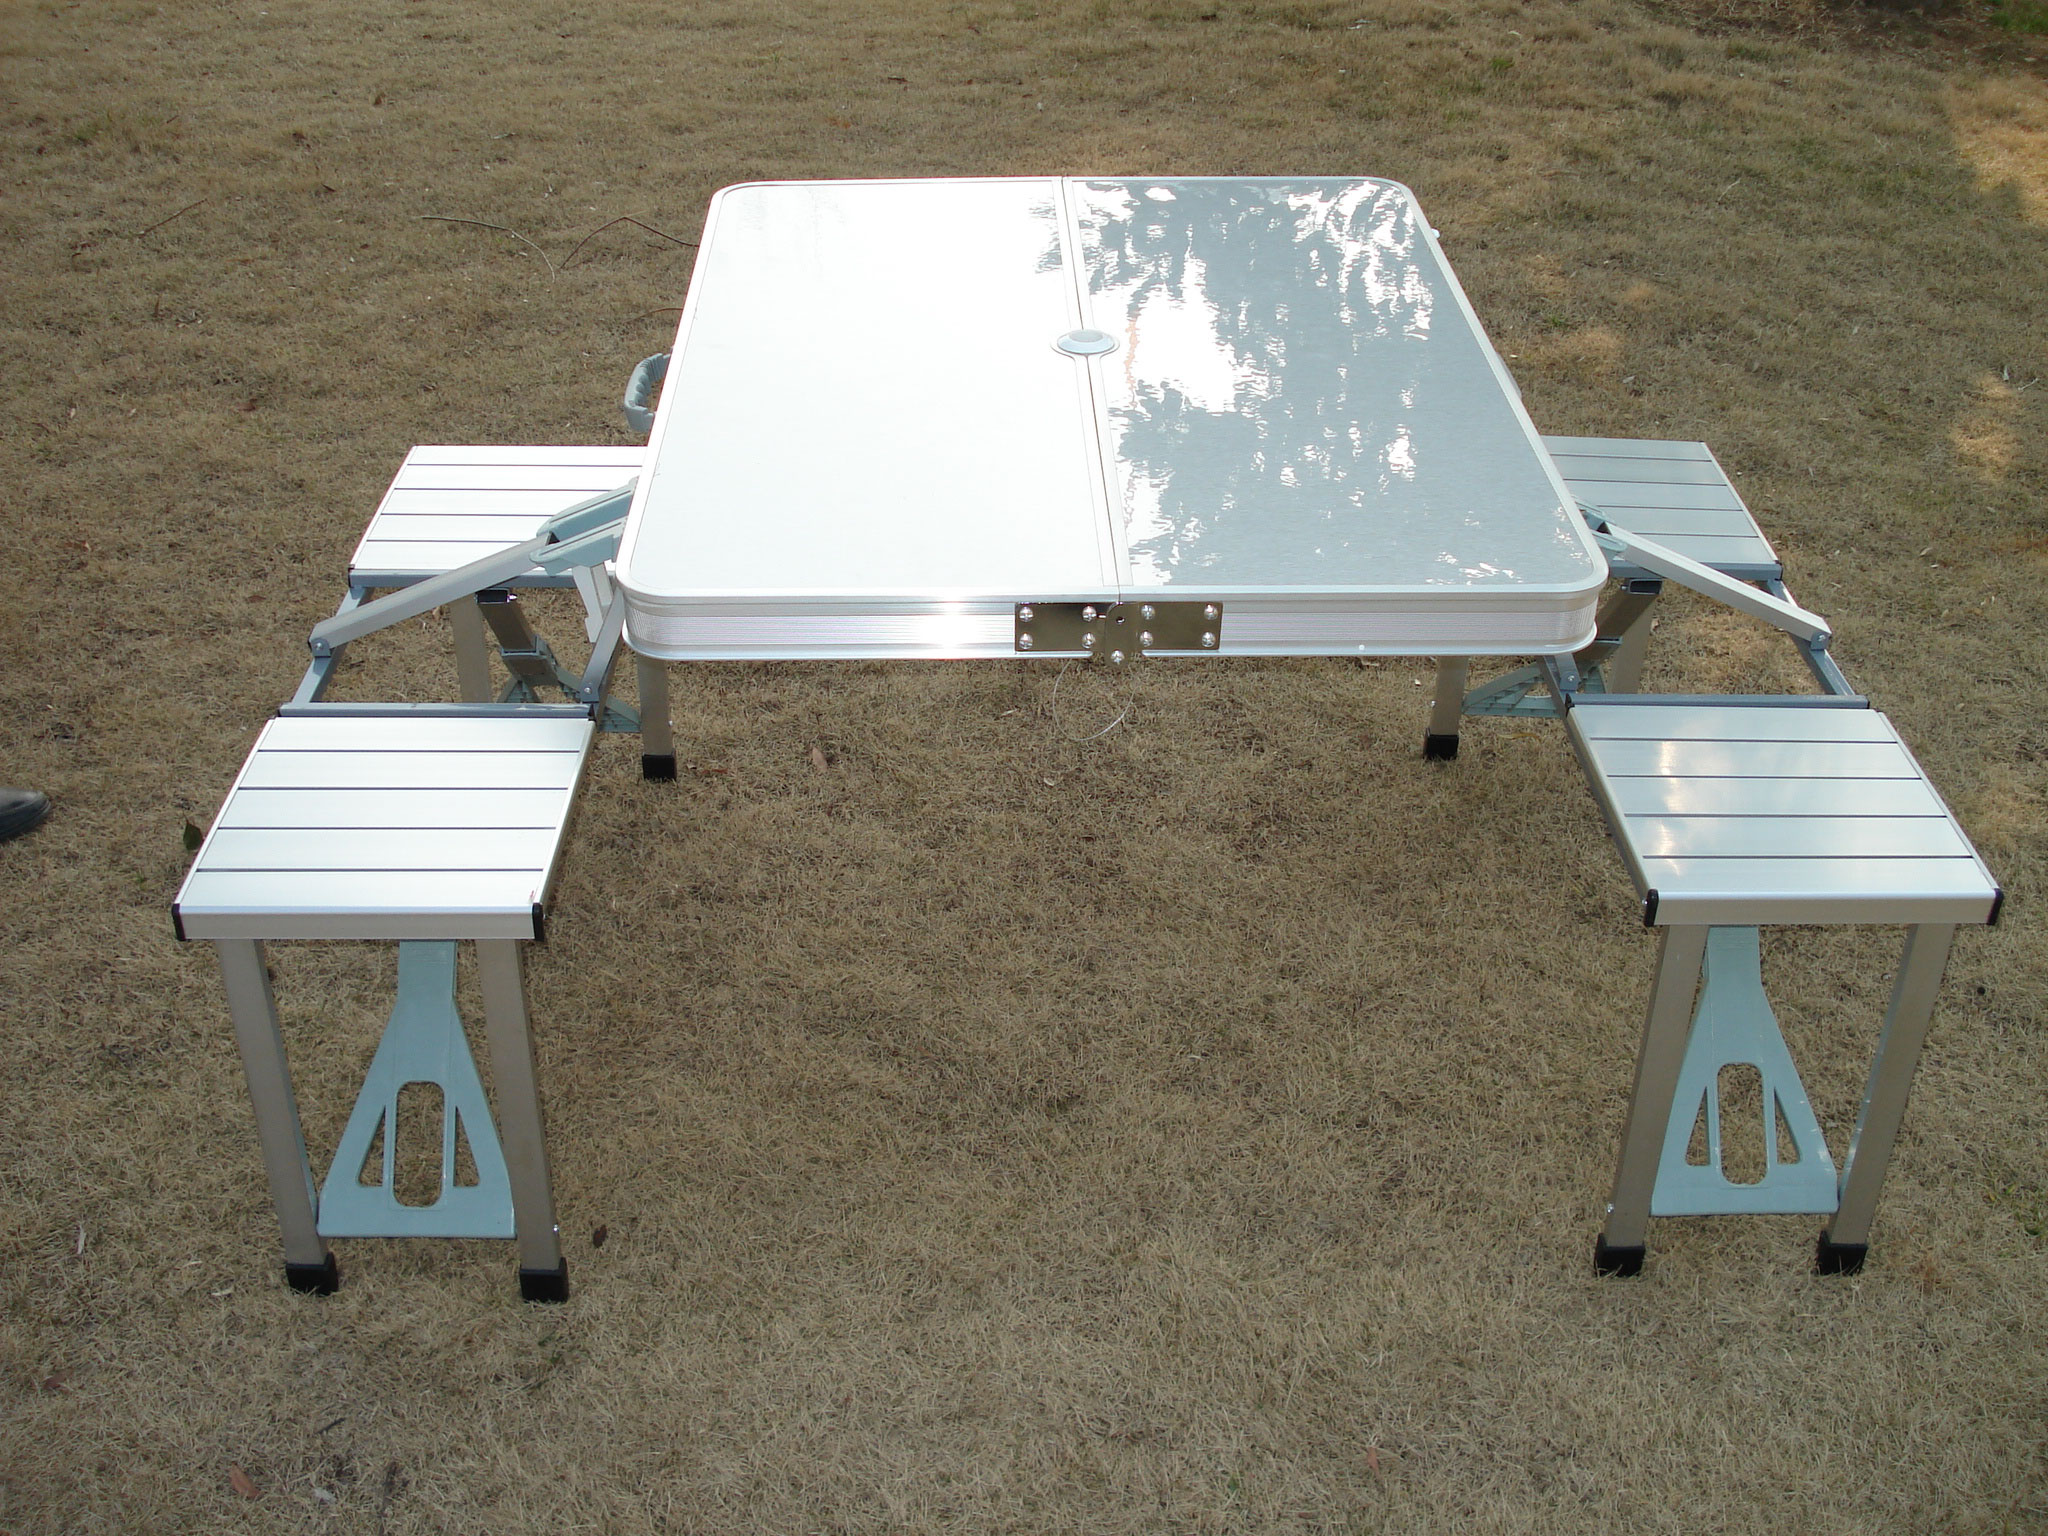 folding tables and chairs portable table sets Camping Sports and